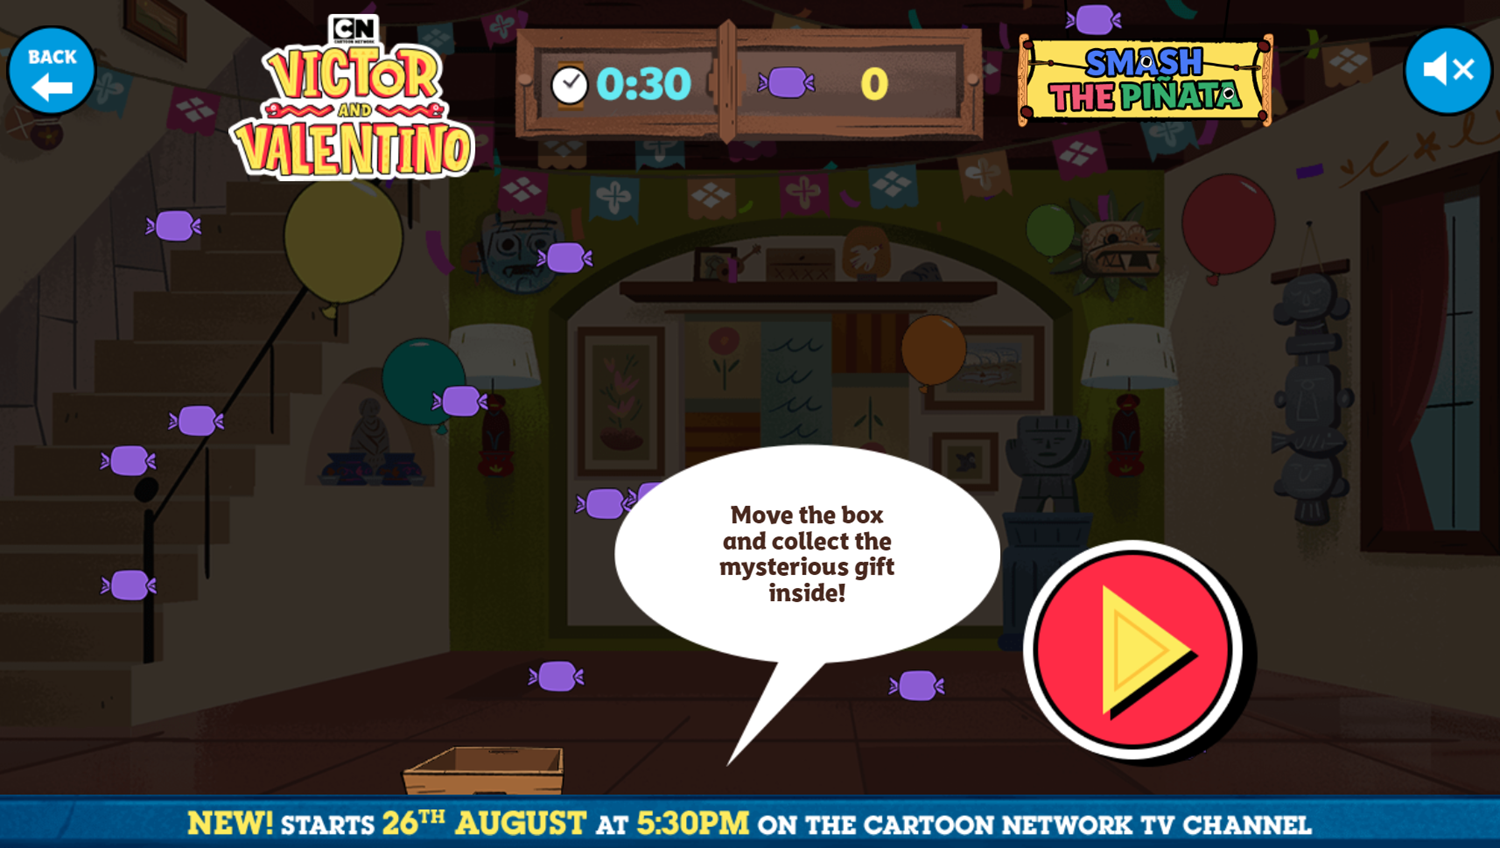 Victor and Valentino Mission to Monte Macabre Case Game Smash The Pinata Candy Collect How To Play Screenshot.